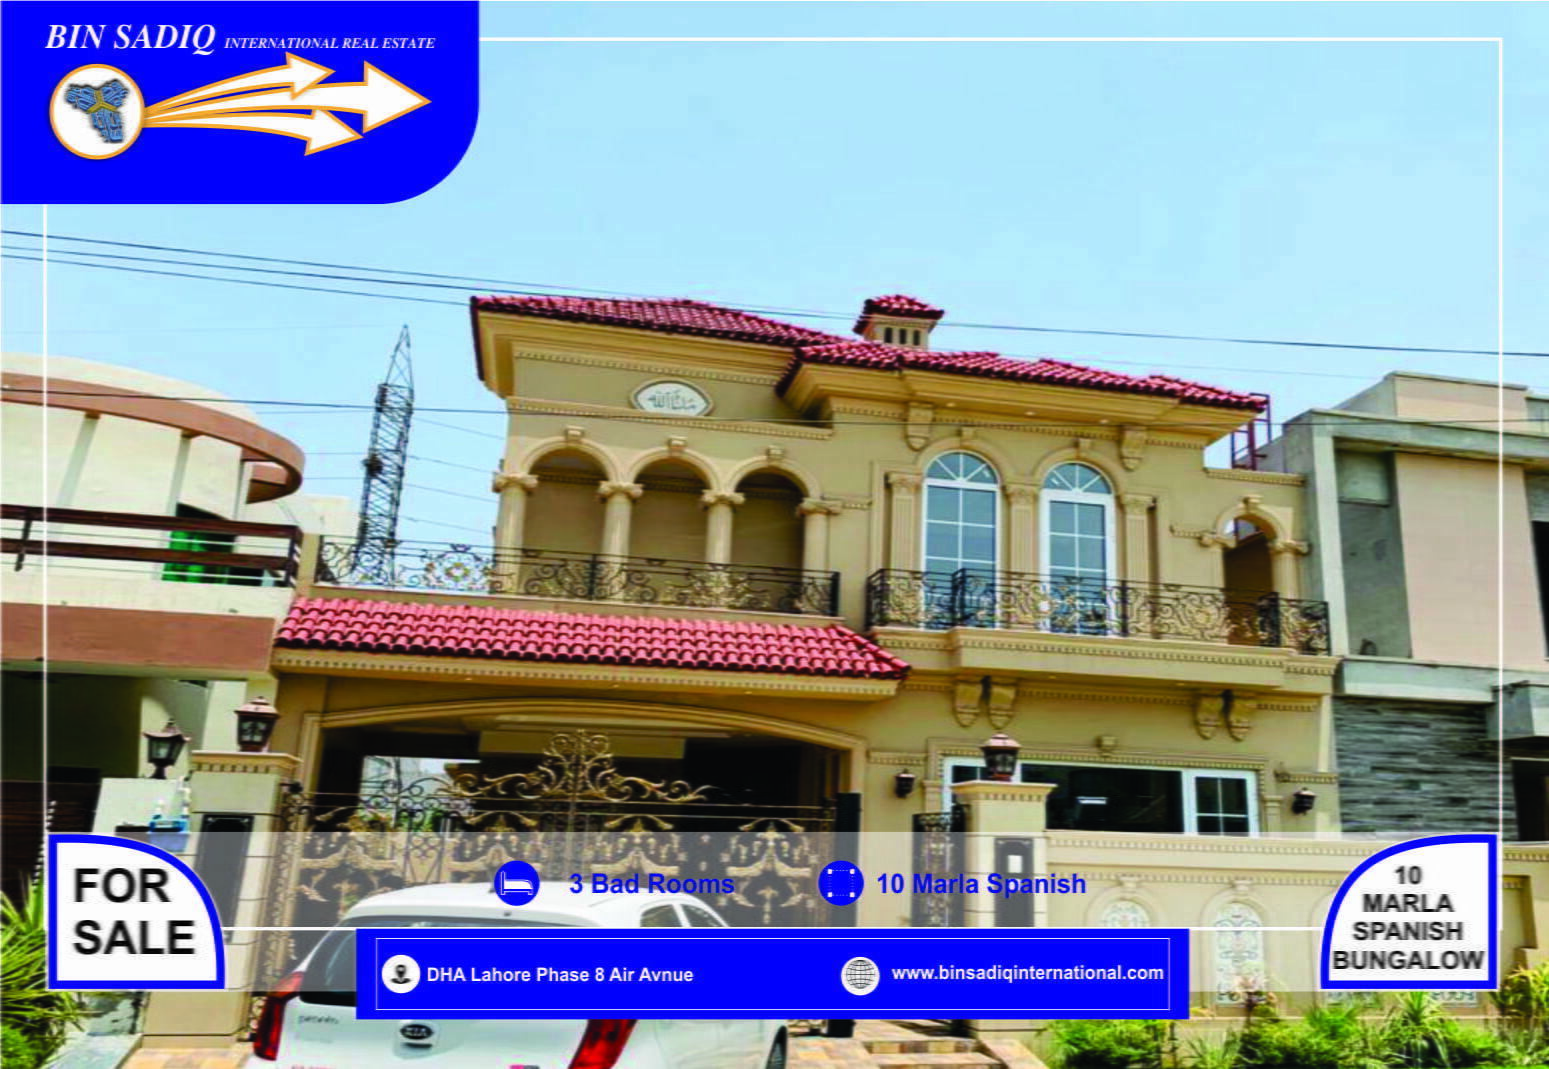 DHA Lahore Phase-8, Air Avenue Facing Park 10 Marla Brand New Spanish Bungalow For Sale